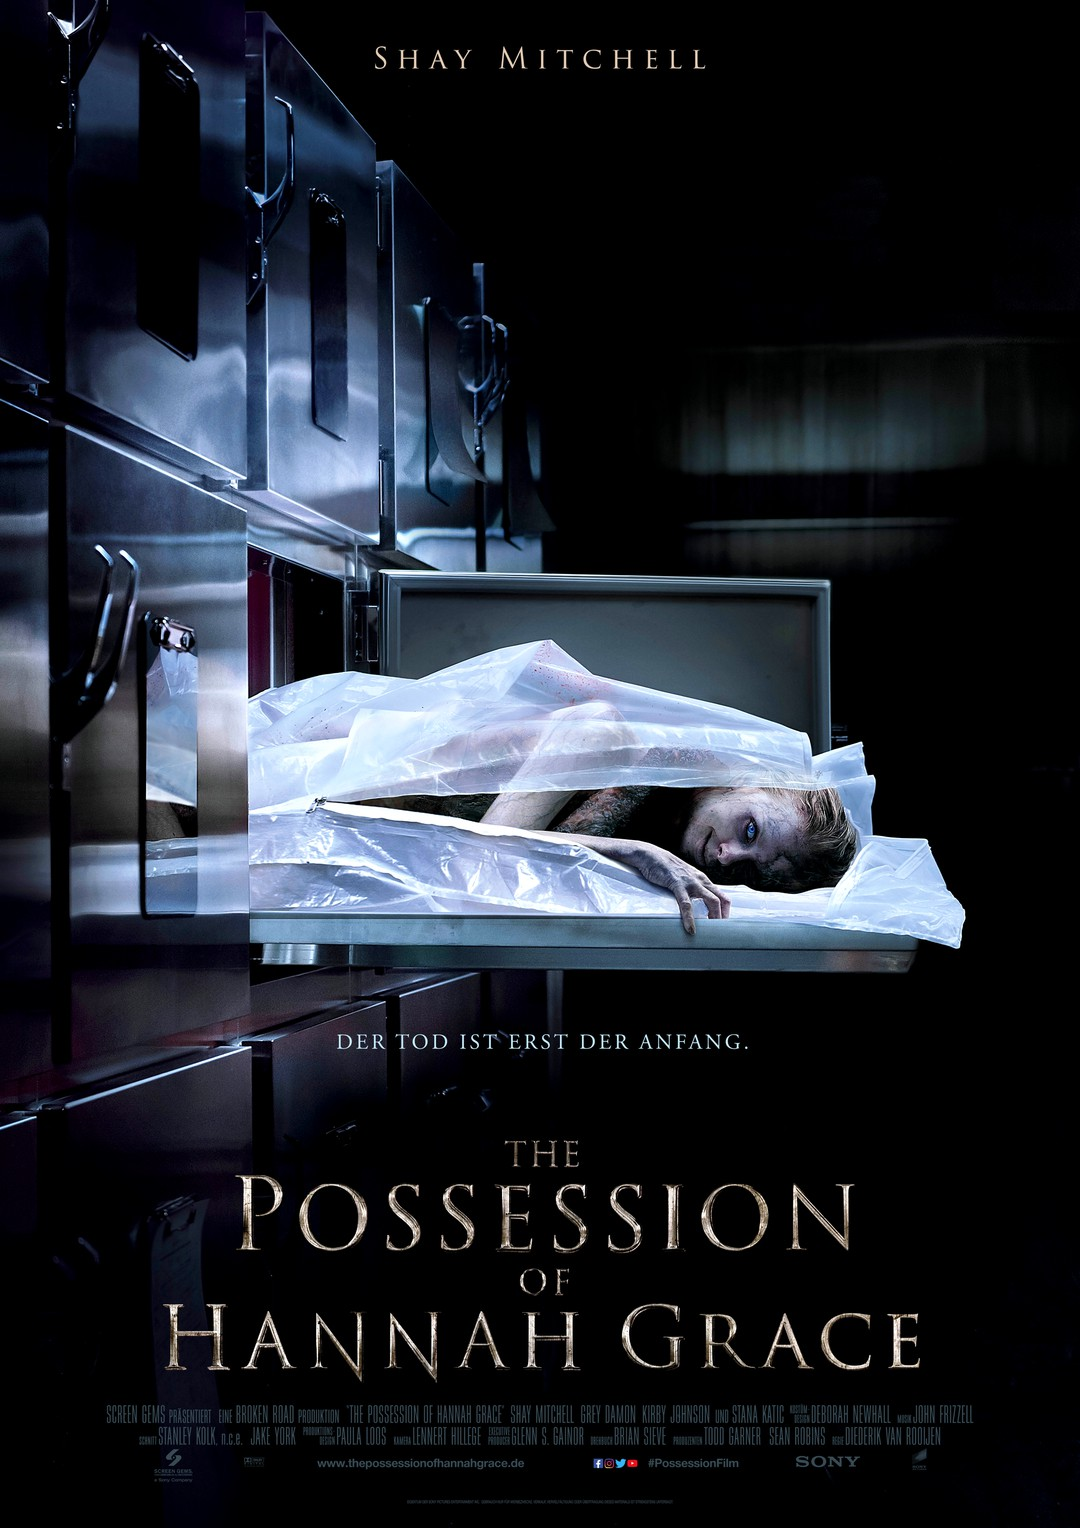 The Possession Of Hannah Grace - Bild 8 von 9